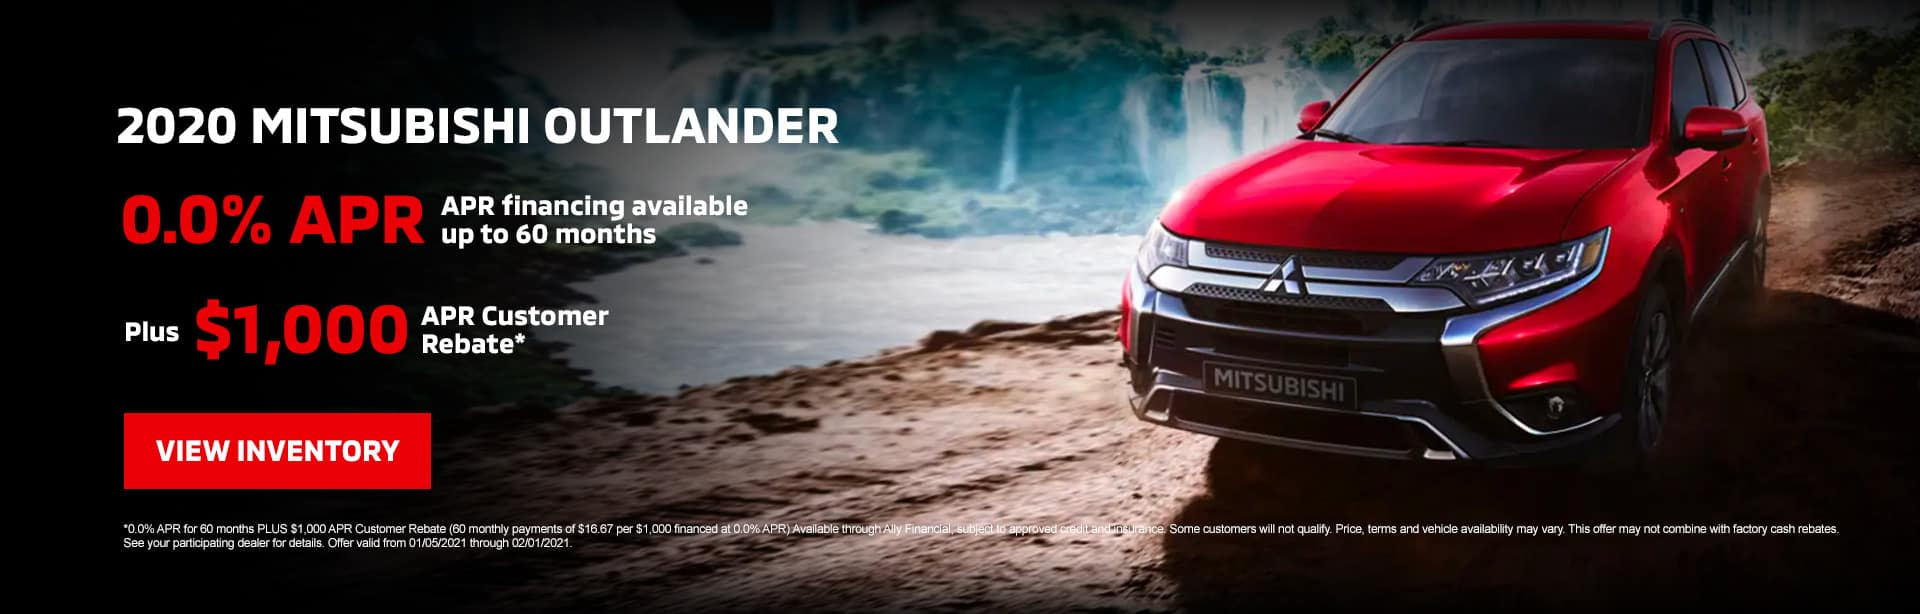 2020 Mitsubishi Outlander: 0.0% APR financing available up to 60 months PLUS $1,000 APR Customer Rebate*